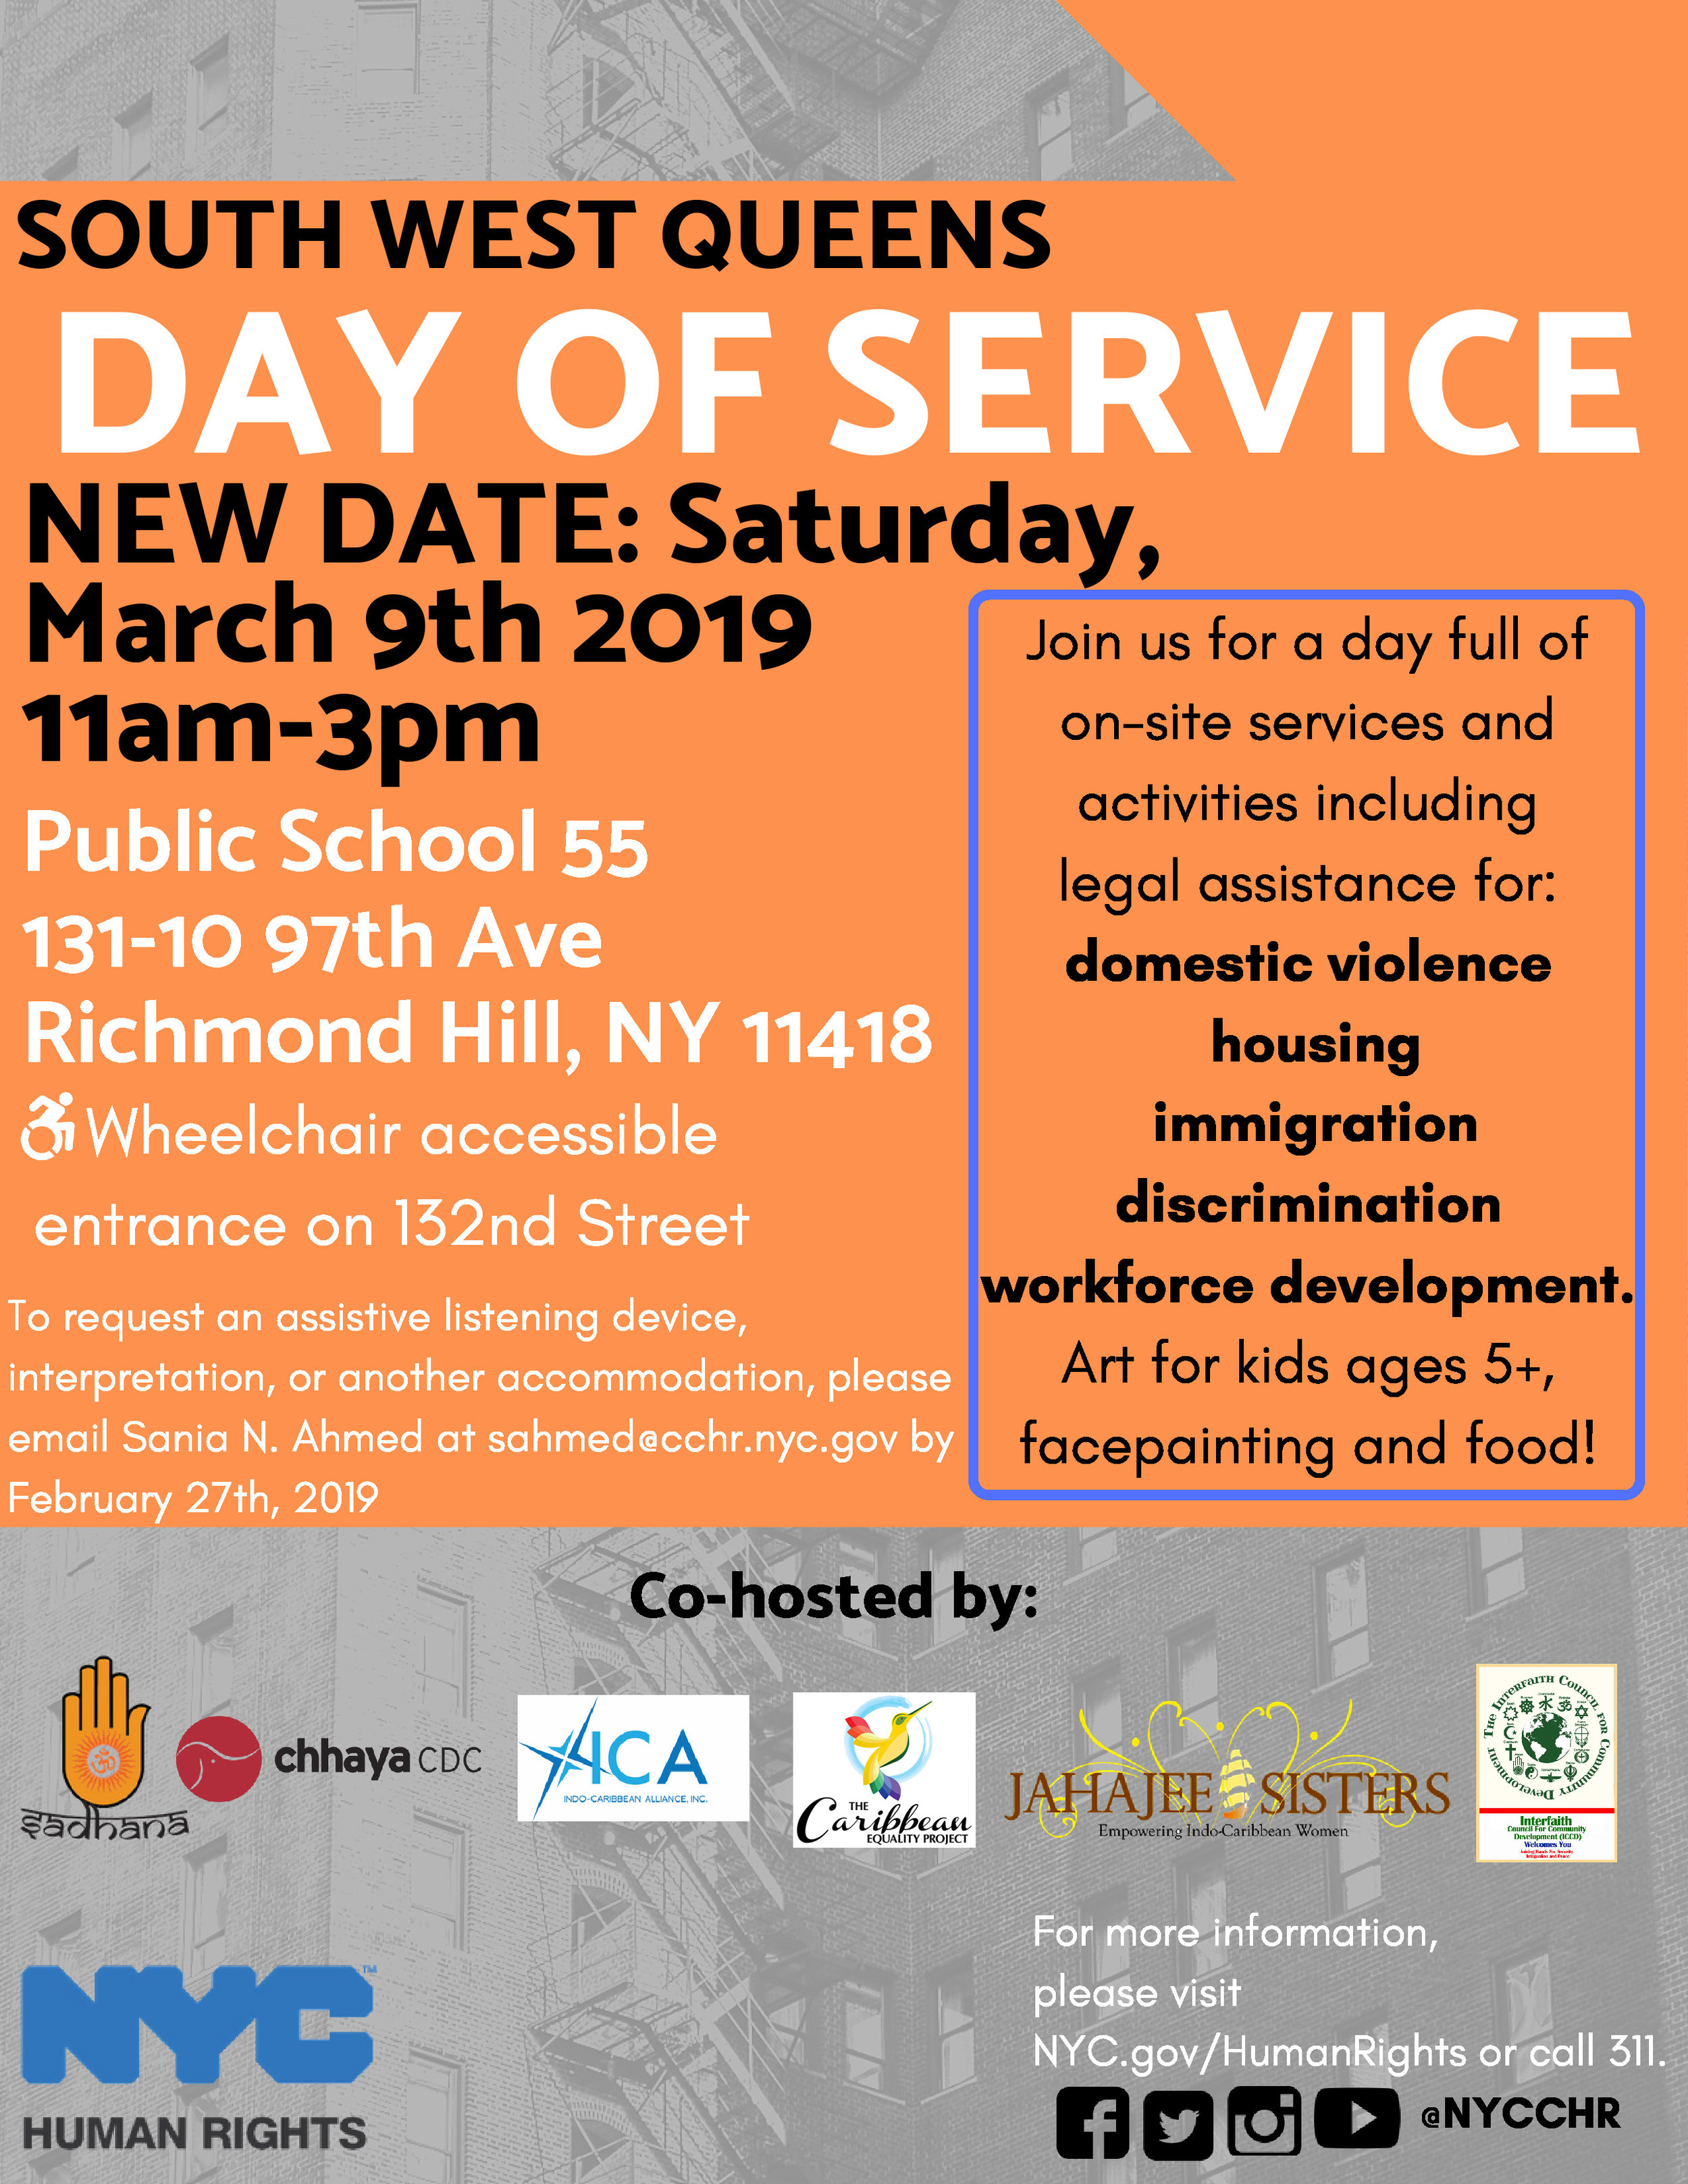 SOUTH WEST QUEENS CITY DAY OF SERVICE.jpg